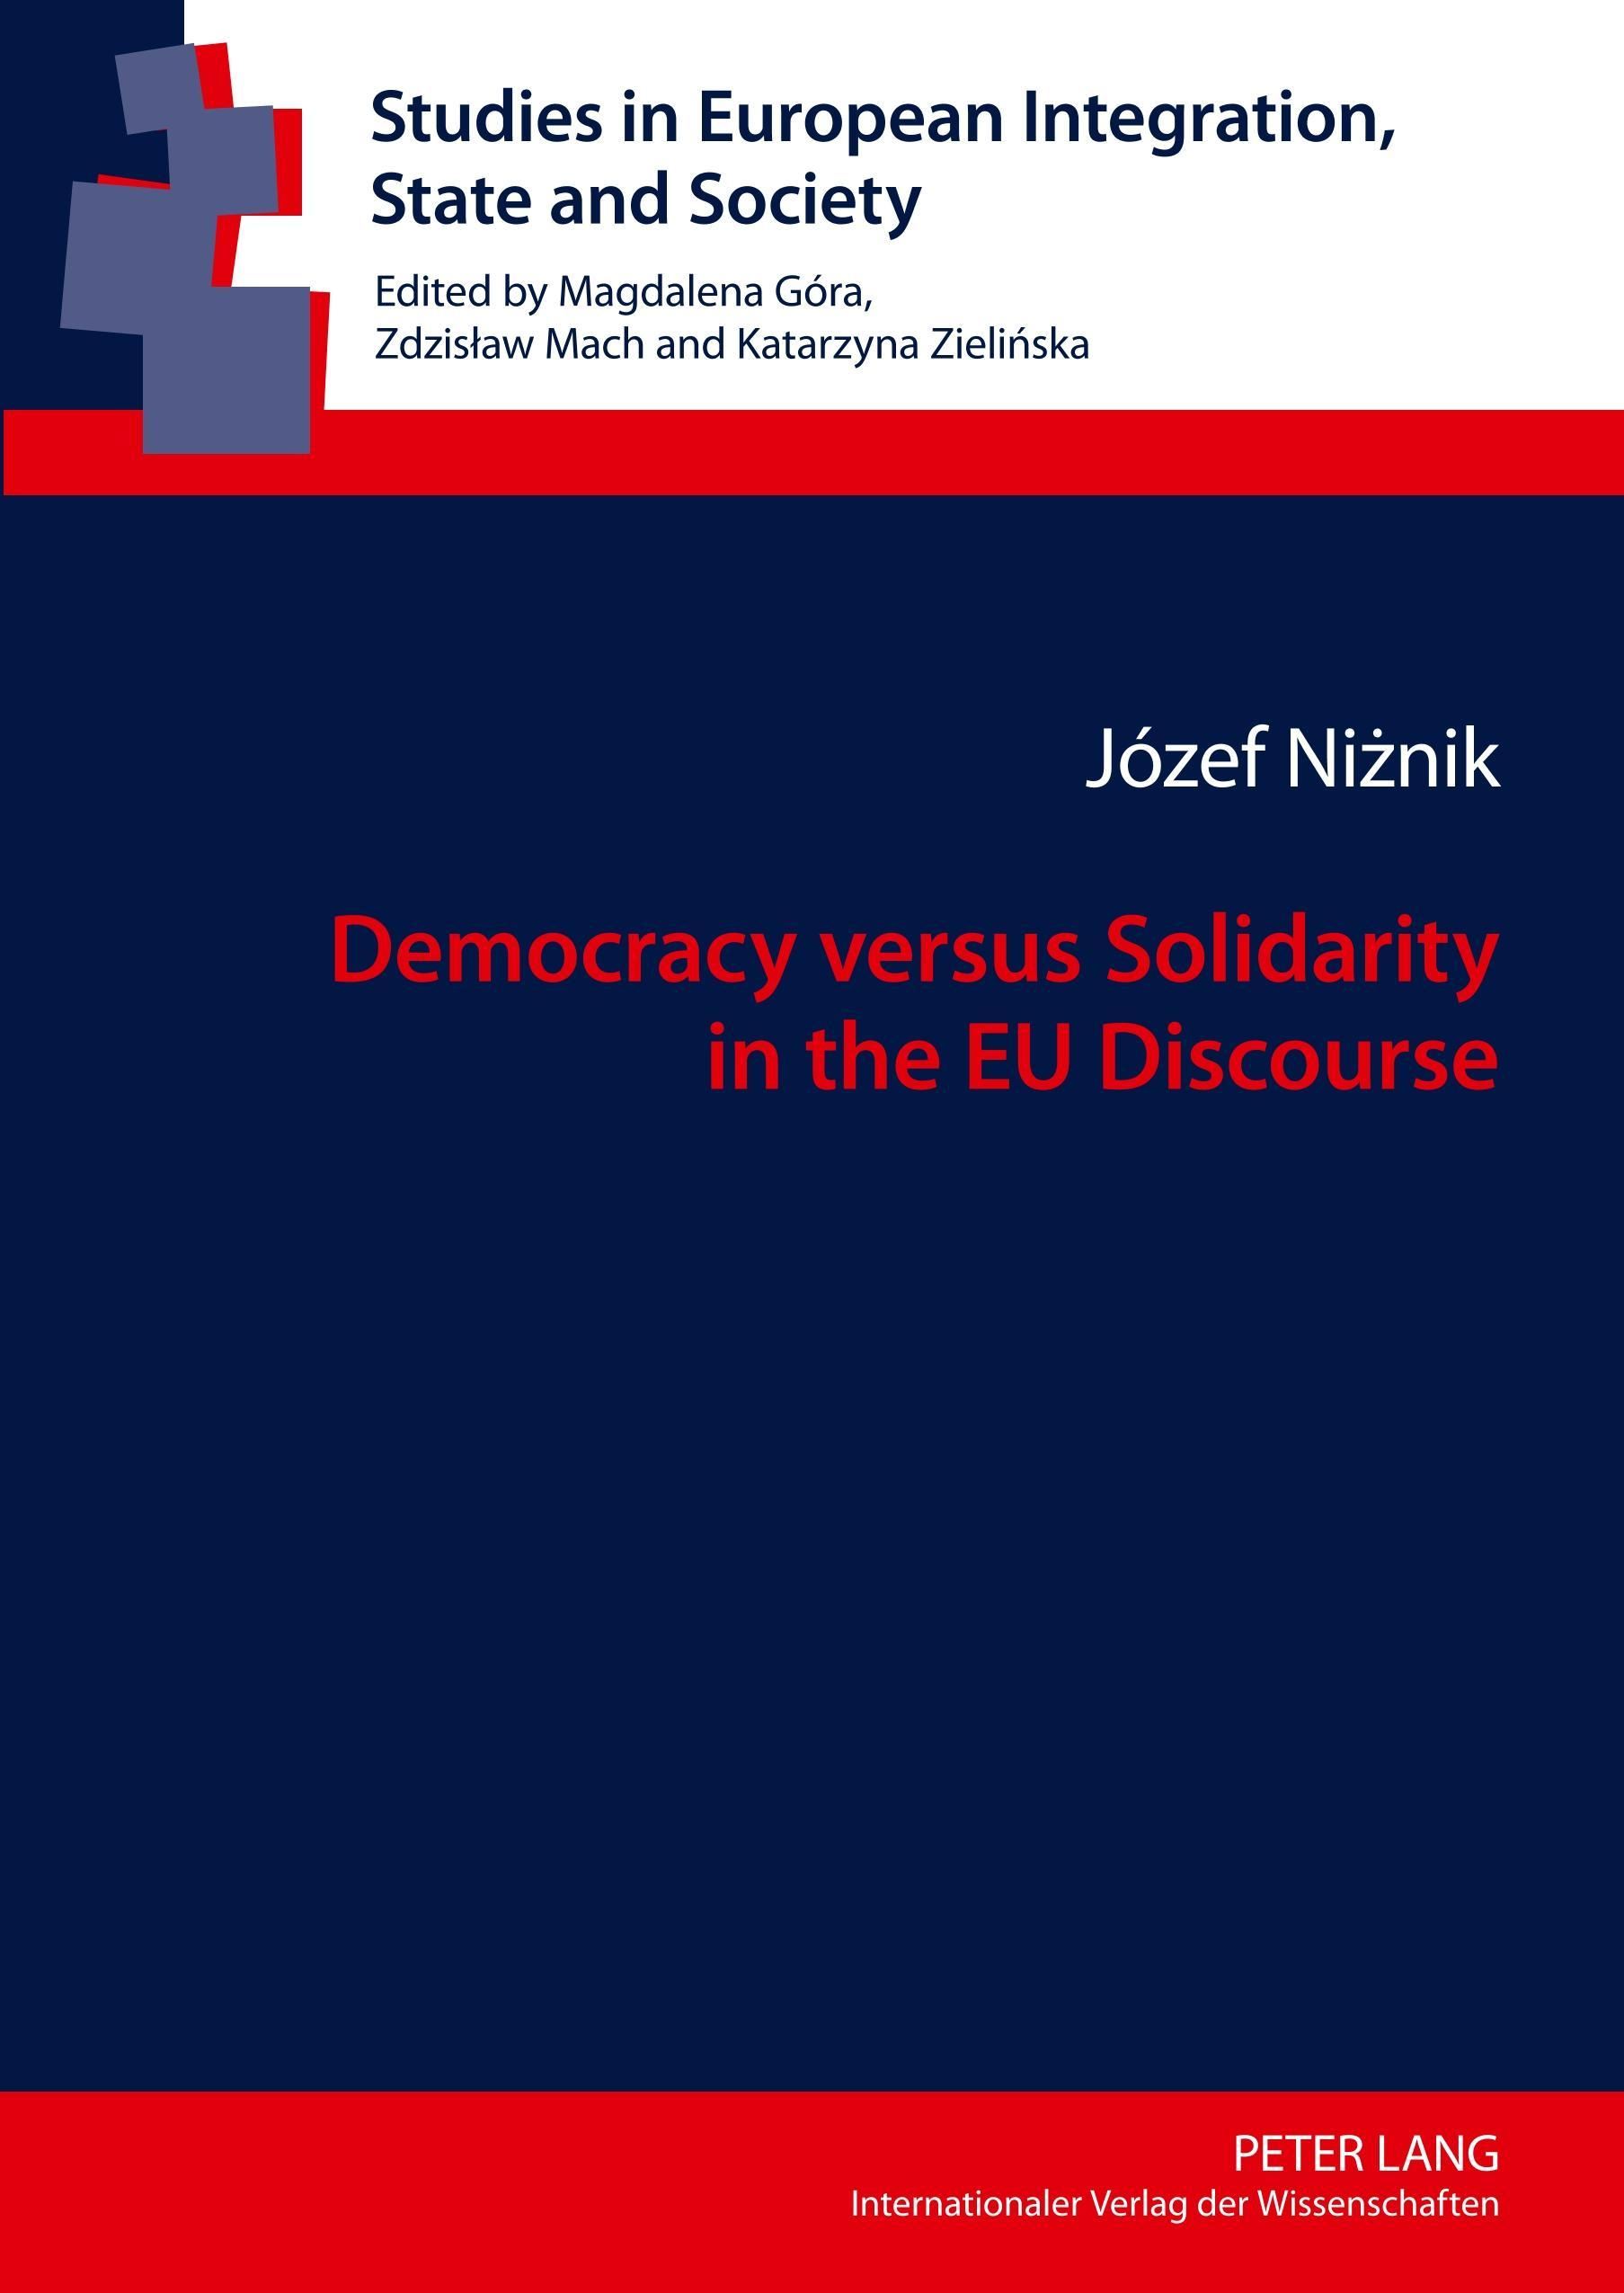 Democracy versus Solidarity in the EU Discourse ~ Józef Nizn ... 9783631638774